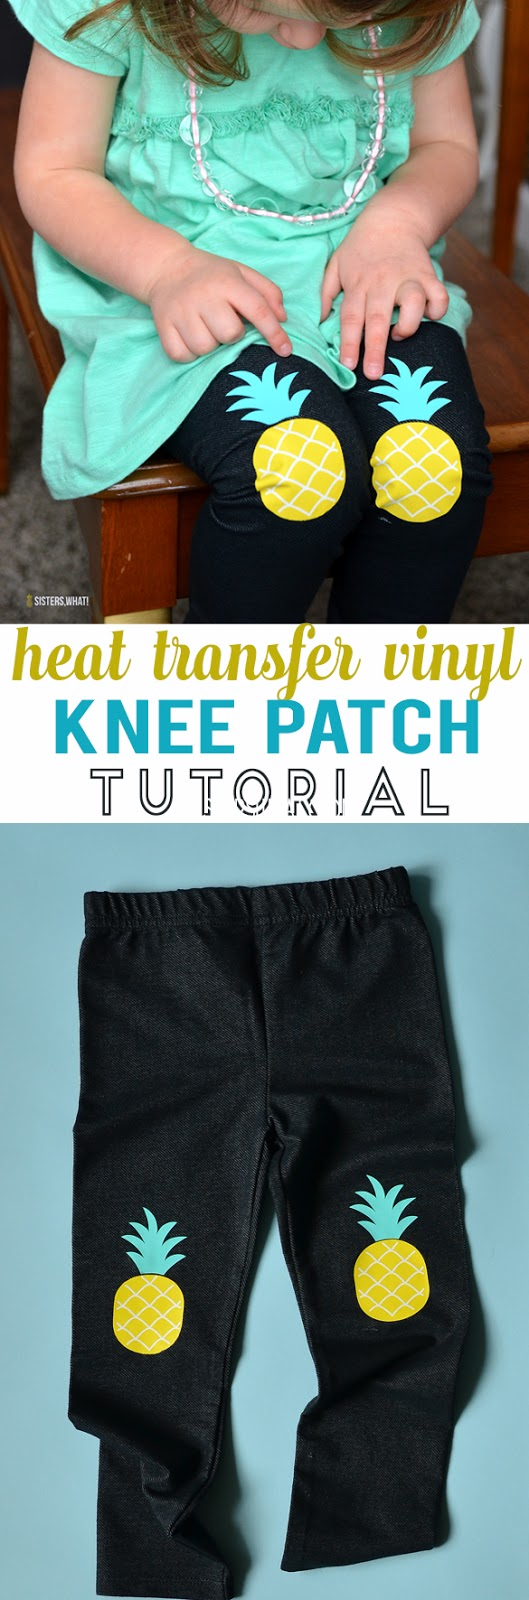 add DIY knee patches using heat transfer stretch vinyl. Make pineapple knee patches!